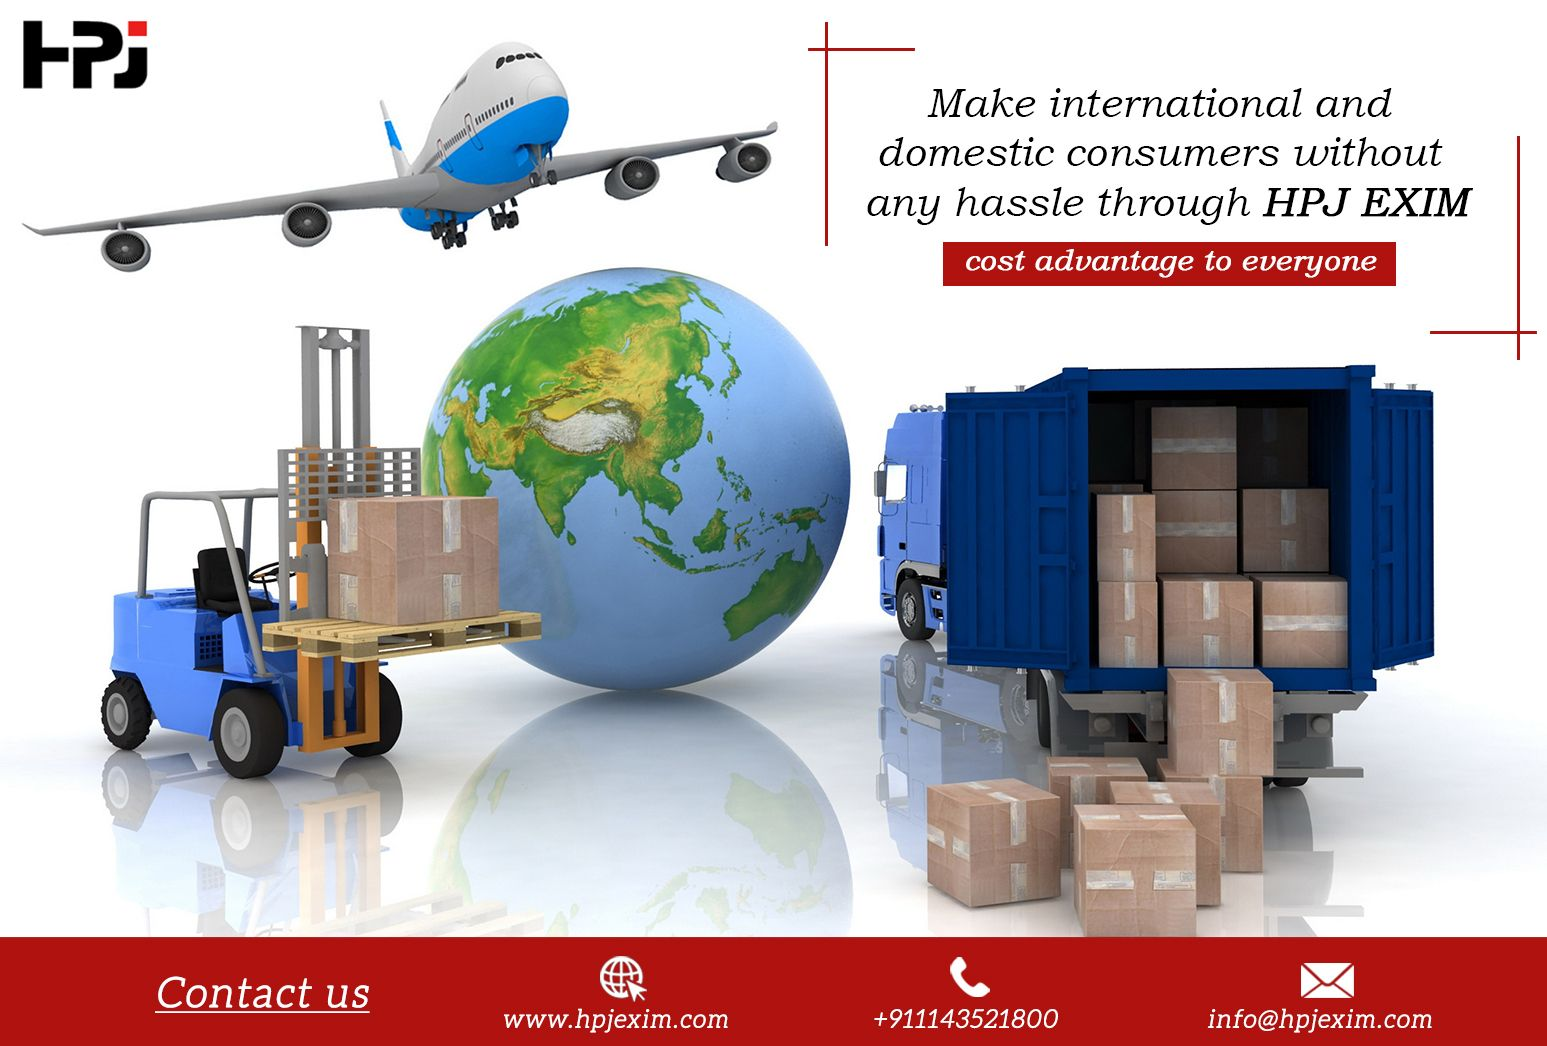 Make international and domestic consumers without any